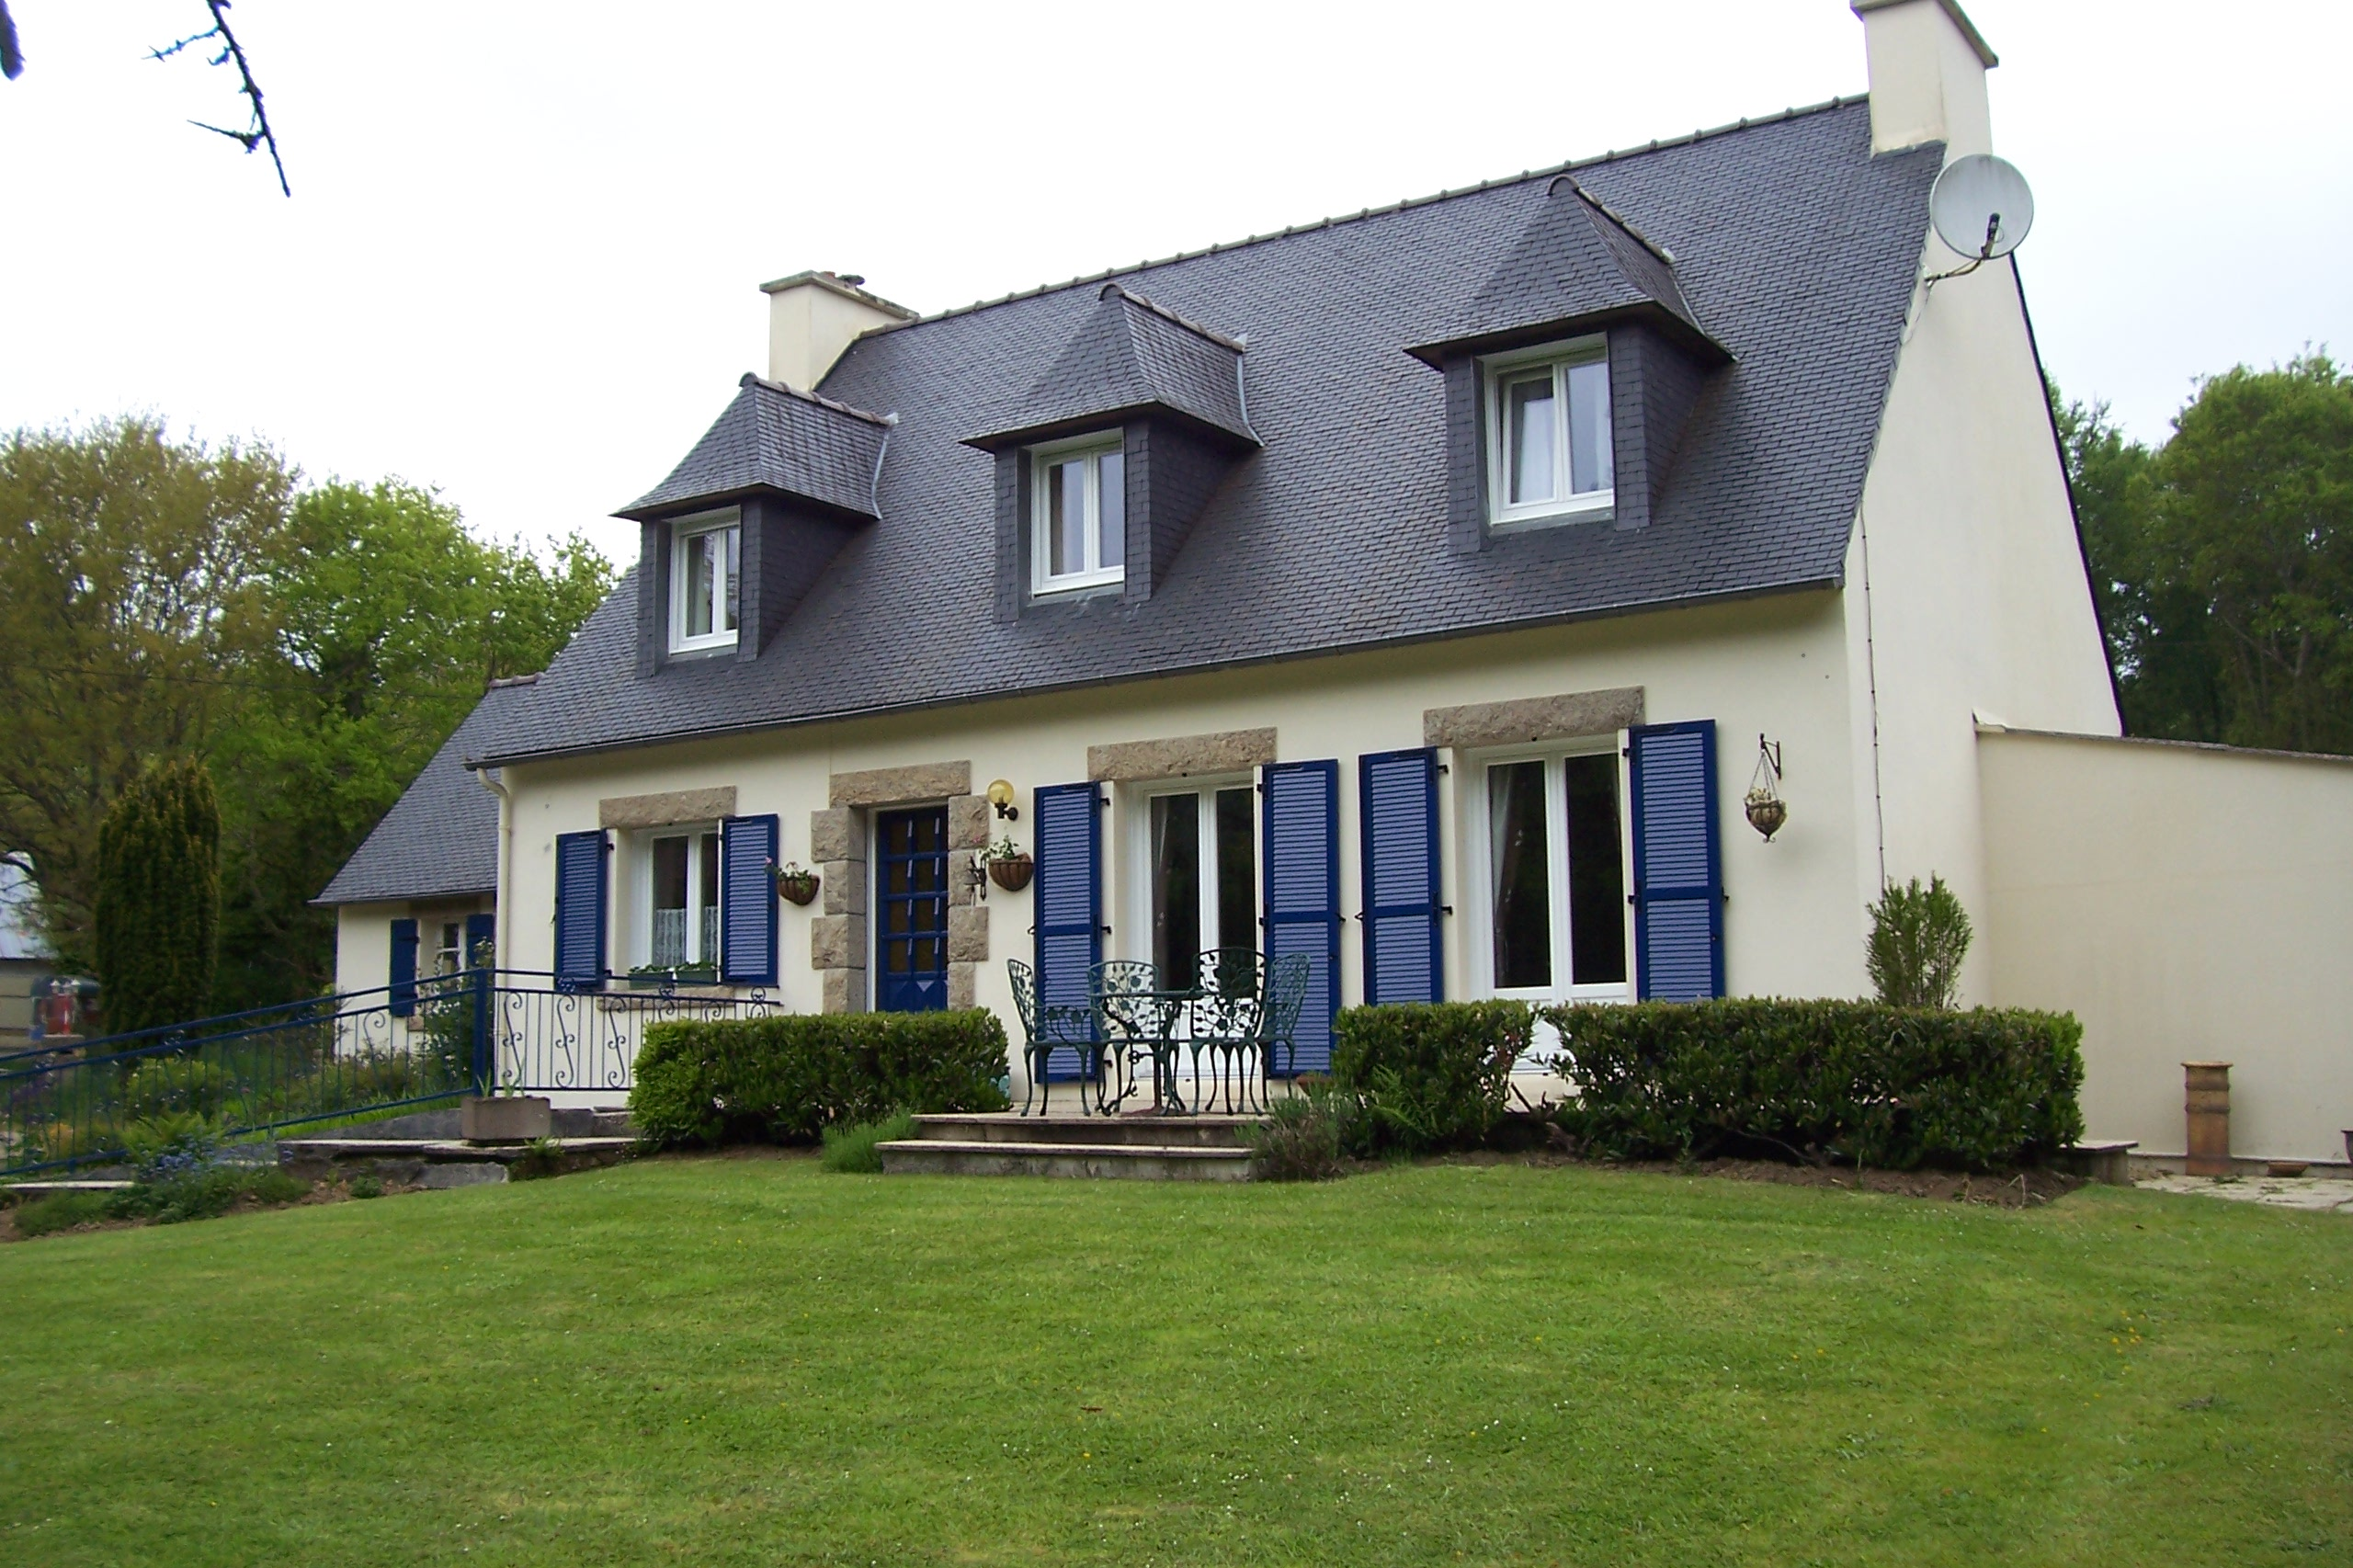 Brittany property for sale english speaking agents in brittany france sa - Maison neo bretonne renovee ...